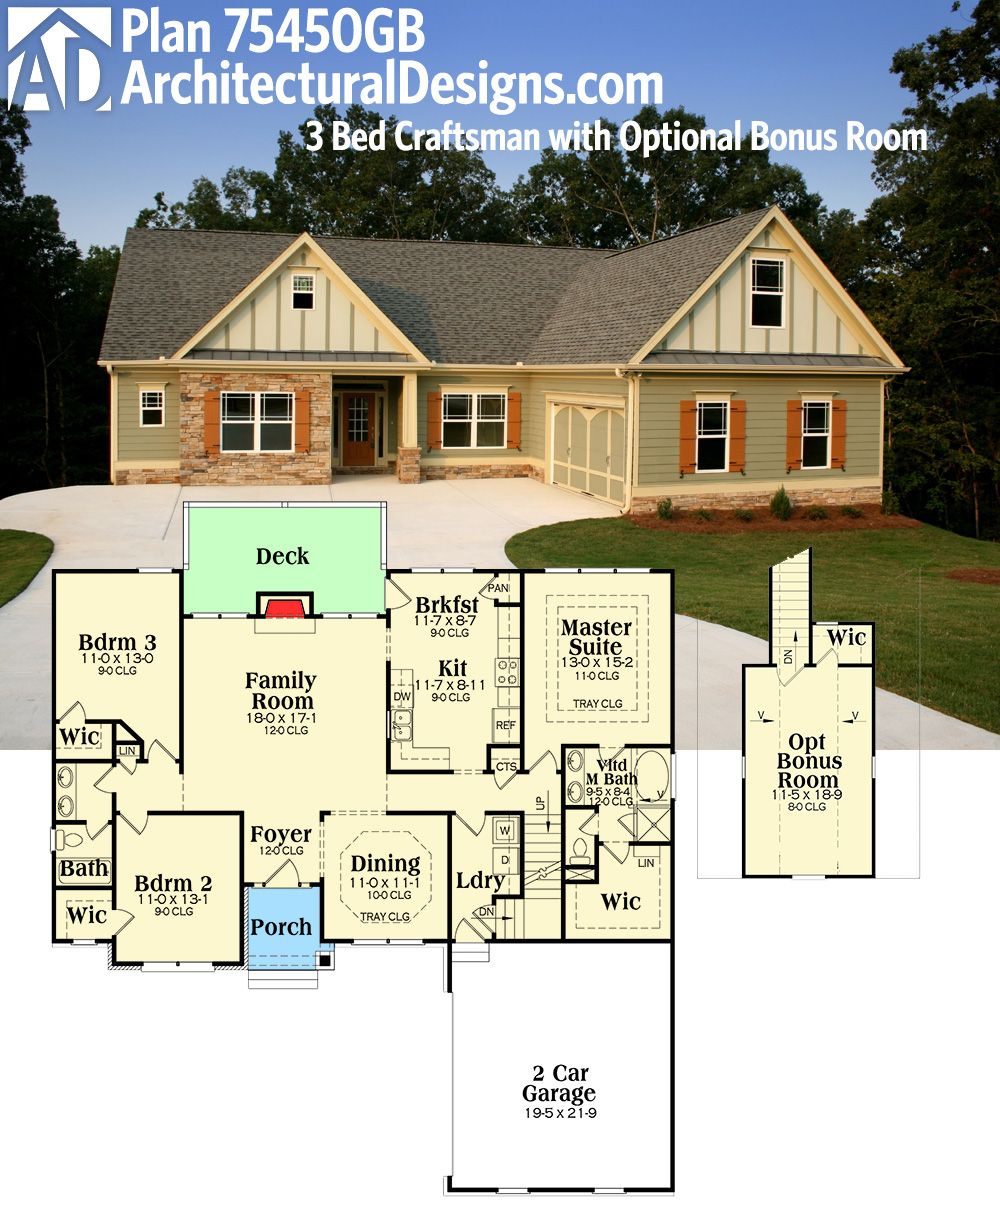 Architectural designs house plan 75450gb gives you one for Garage architectural plans